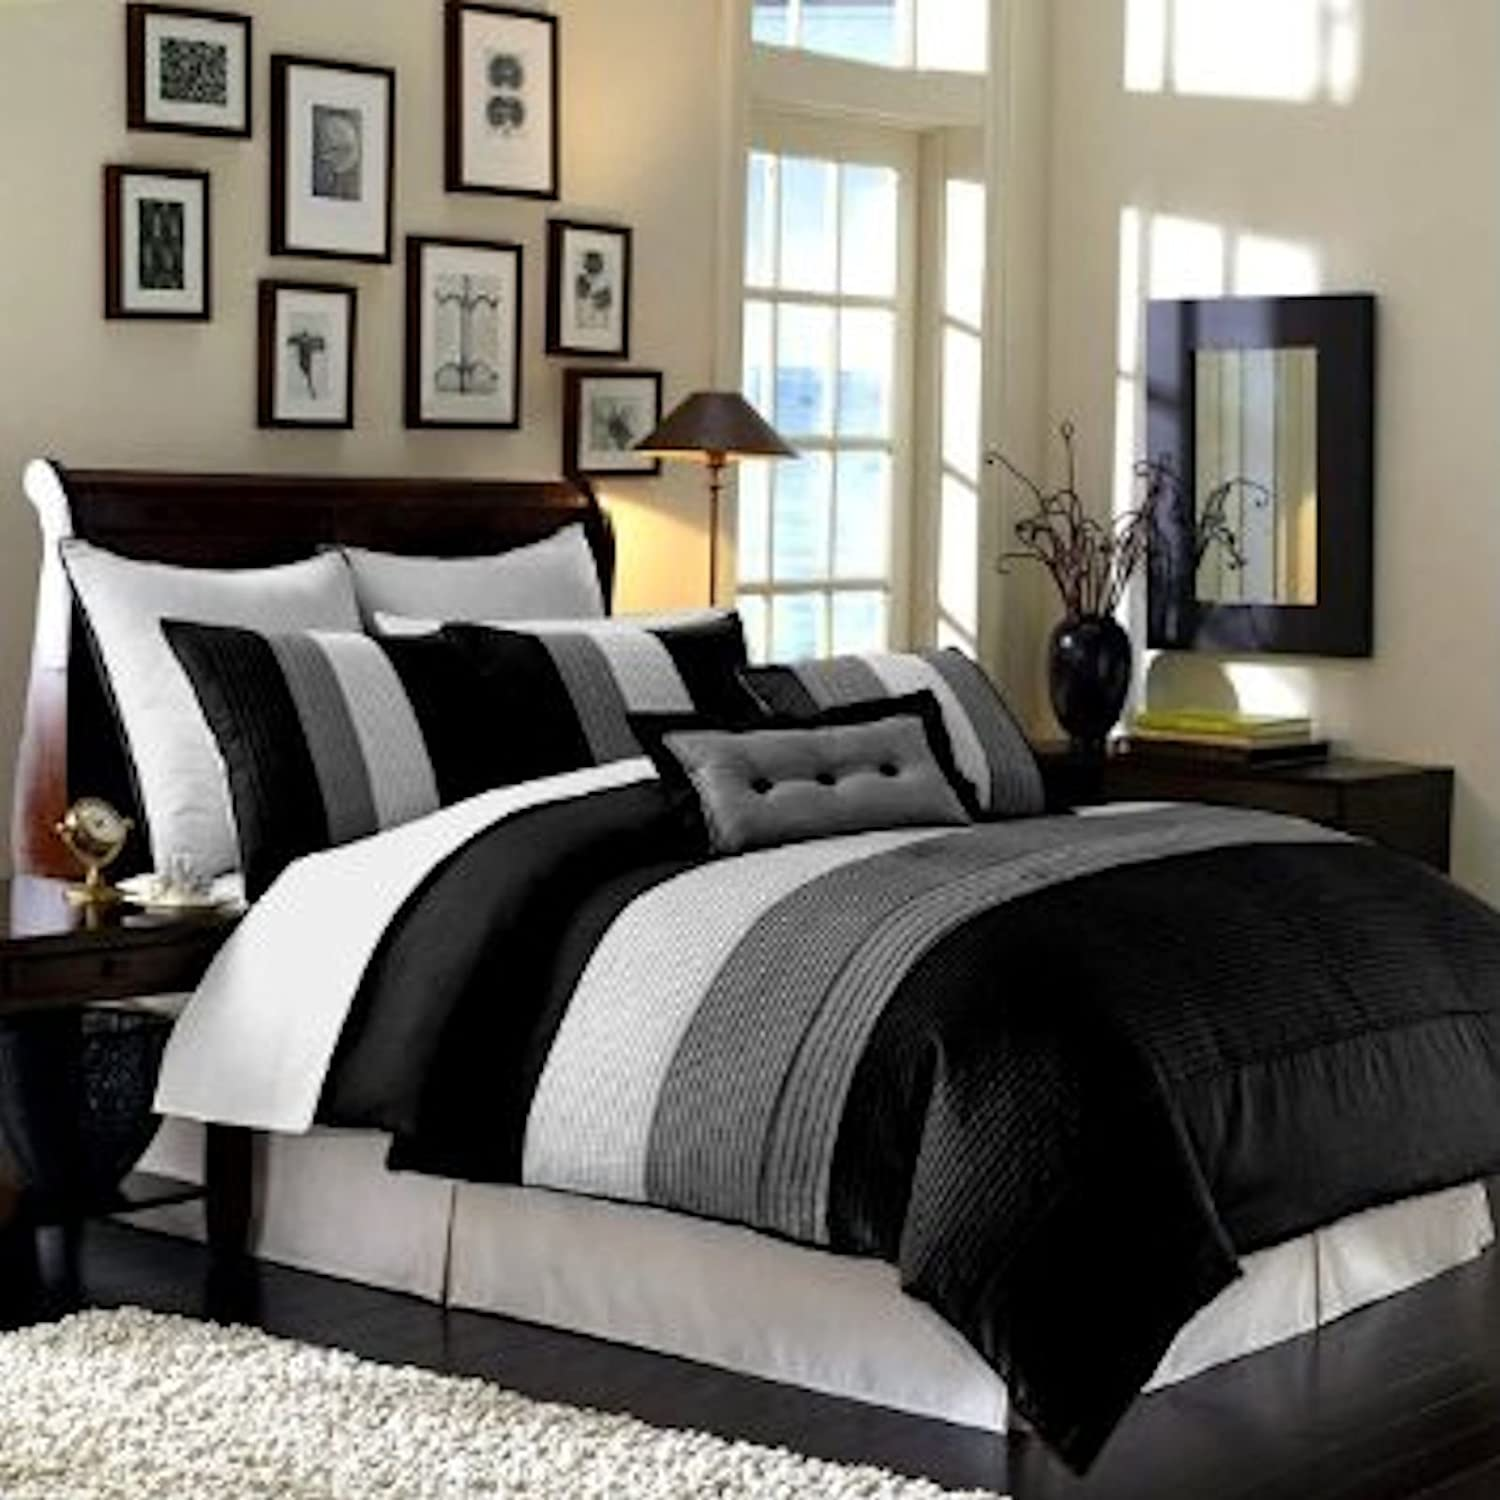 BEAUTIFUL MODERN CONTEMPORARY CHIC BLACK WHITE STRIPE COMFORTER SET /& PILLOWS